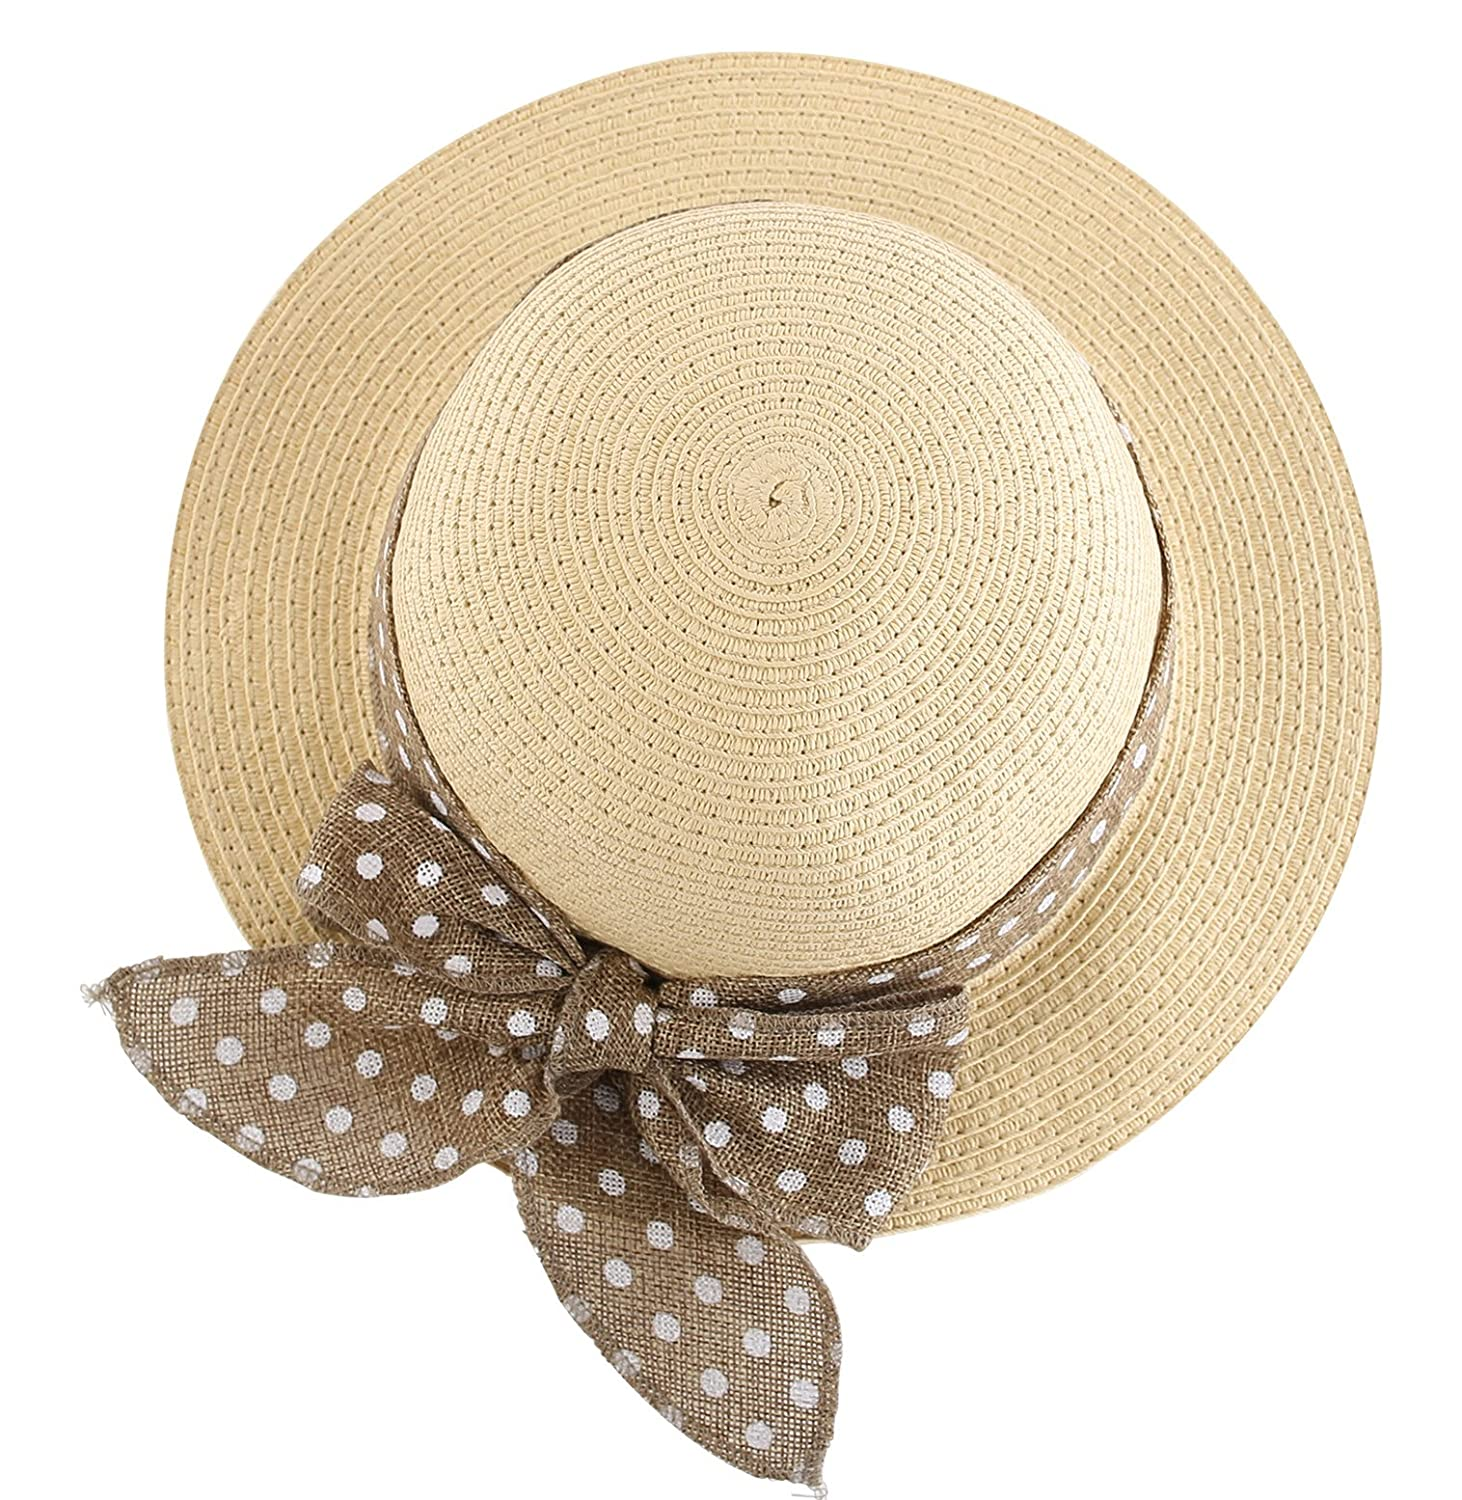 348a51df274 Amazon.com  Connectyle Kids Summer Straw Hat Bowknot Beach Sun Protection  Hats for Girls  Clothing